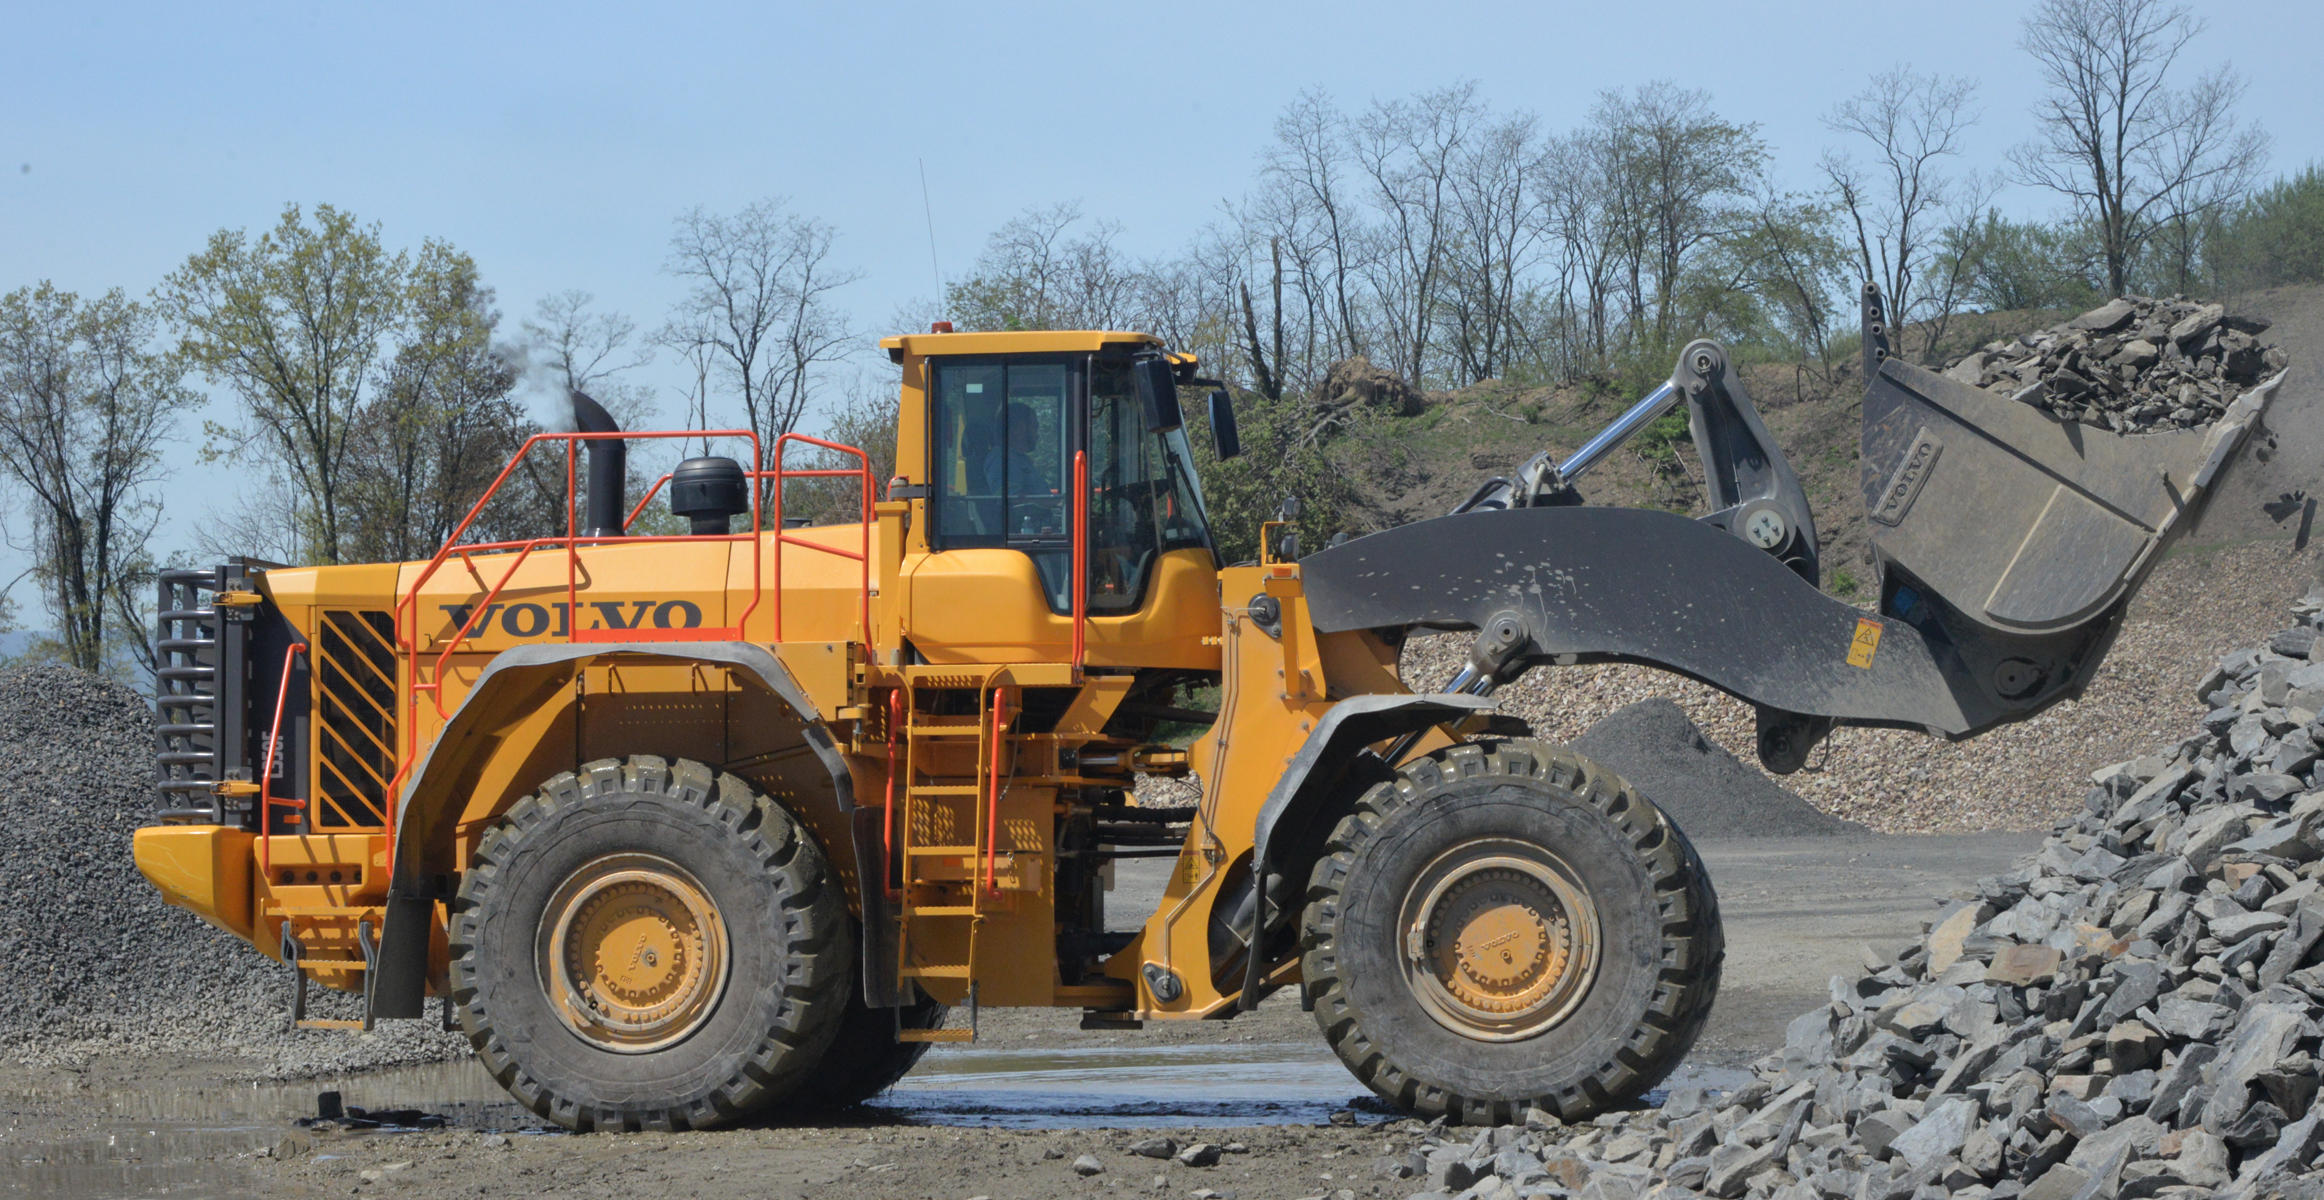 Volvo articulated truck at Lycoming County landfill